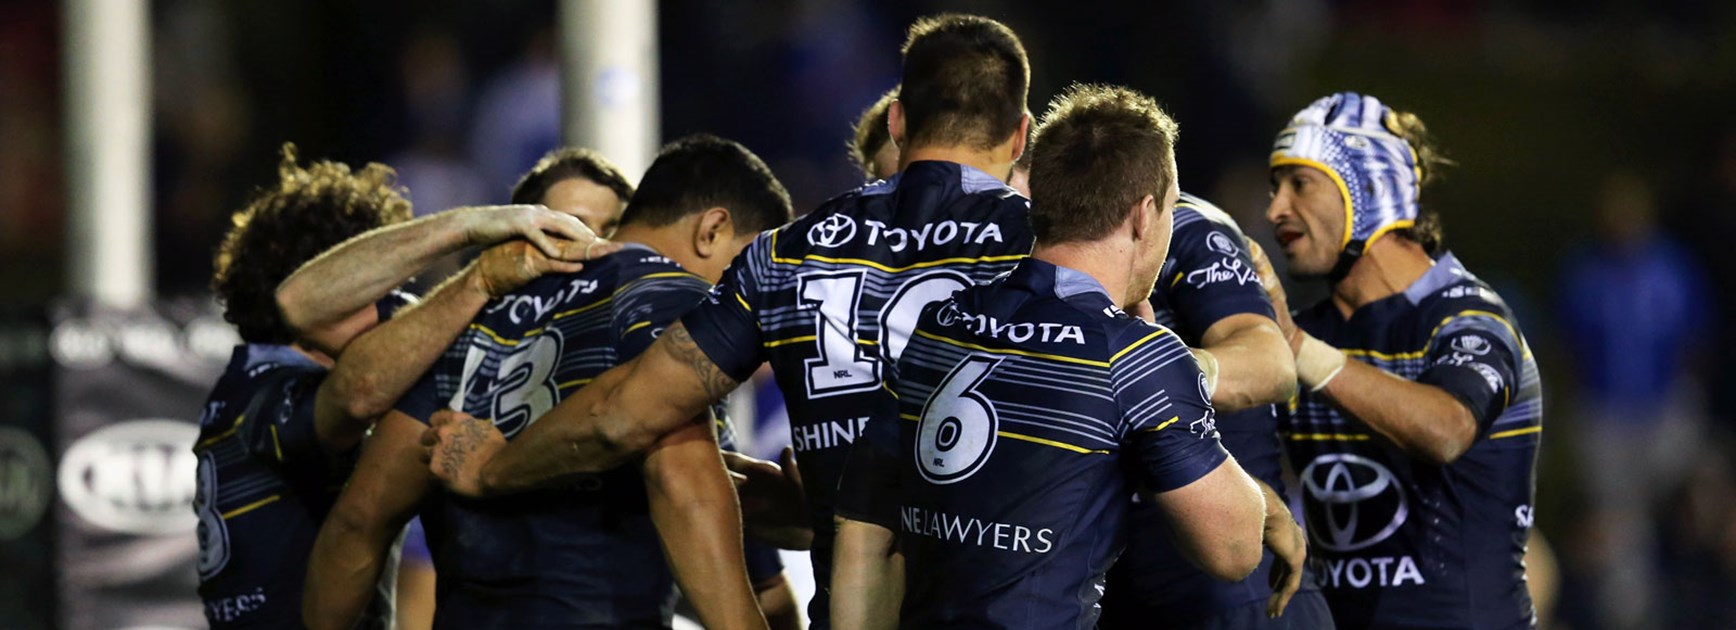 The Cowboys enjoyed a big win over the Bulldogs in Round 25.